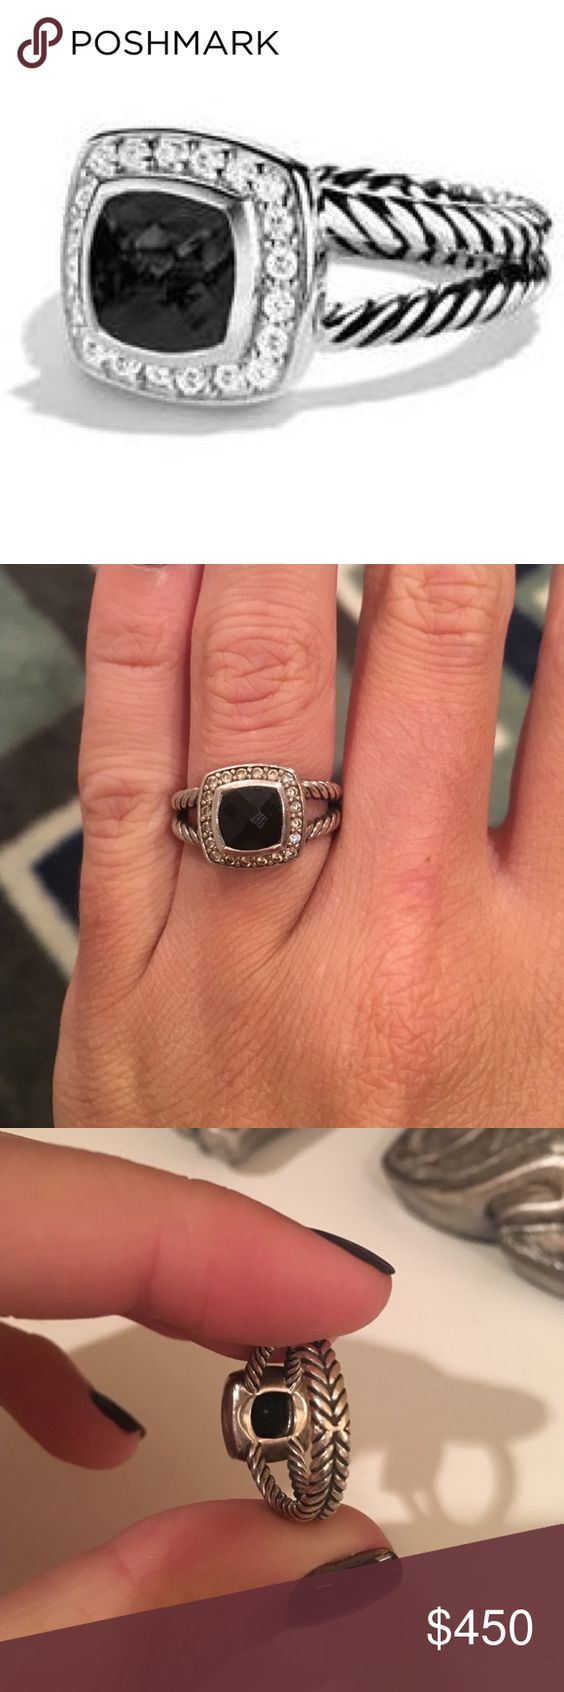 David yurman ring Black onyx stone with diamonds petite David yurman ring. Lightly worn, great condition. Don't have tags but shows pic of number in ring. 100% authentic. Will ship with dust bag. David Yurman Jewelry Rings